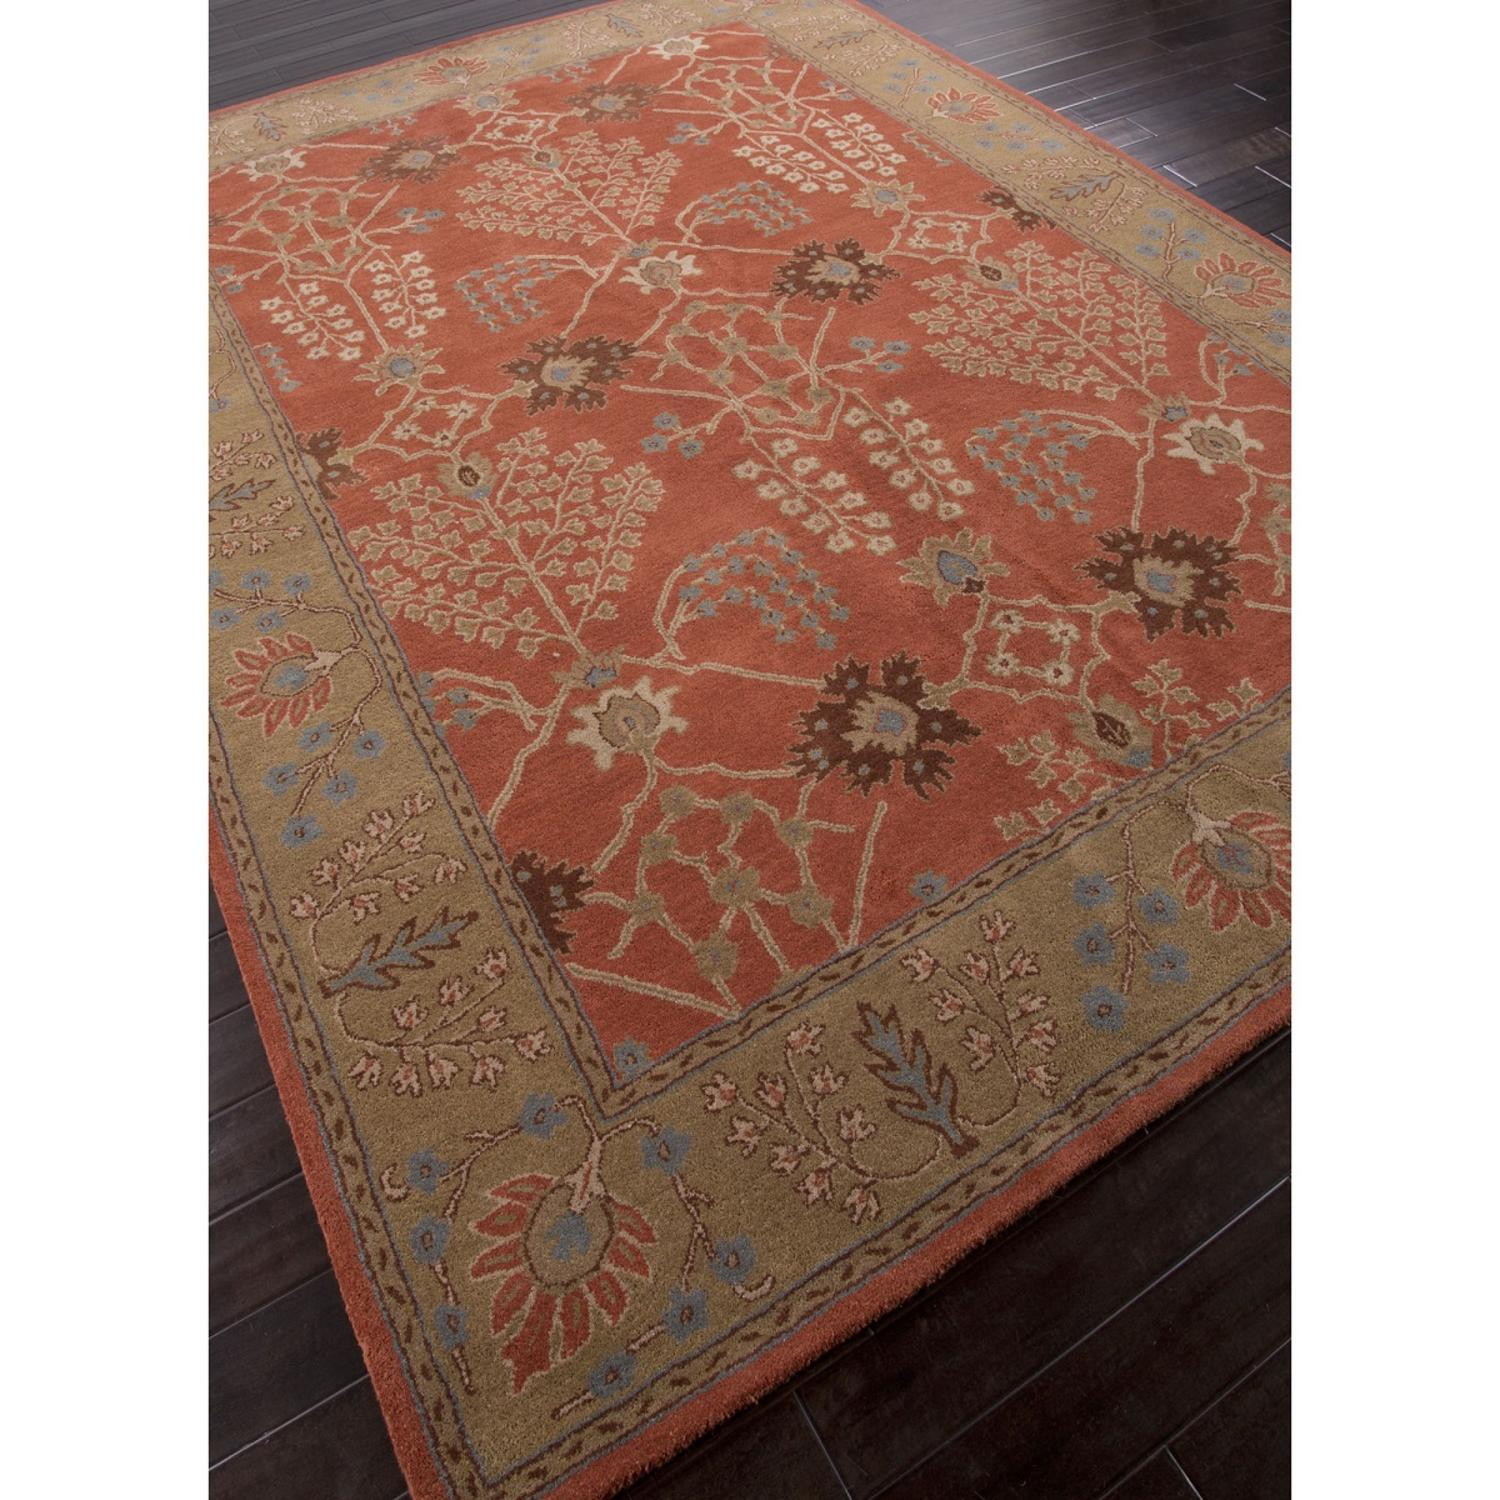 3.5' x 5.5' Burnt Orange and Mocha Brown Arts And Crafts Pattern Hand-Tufted Wool Area Throw Rug